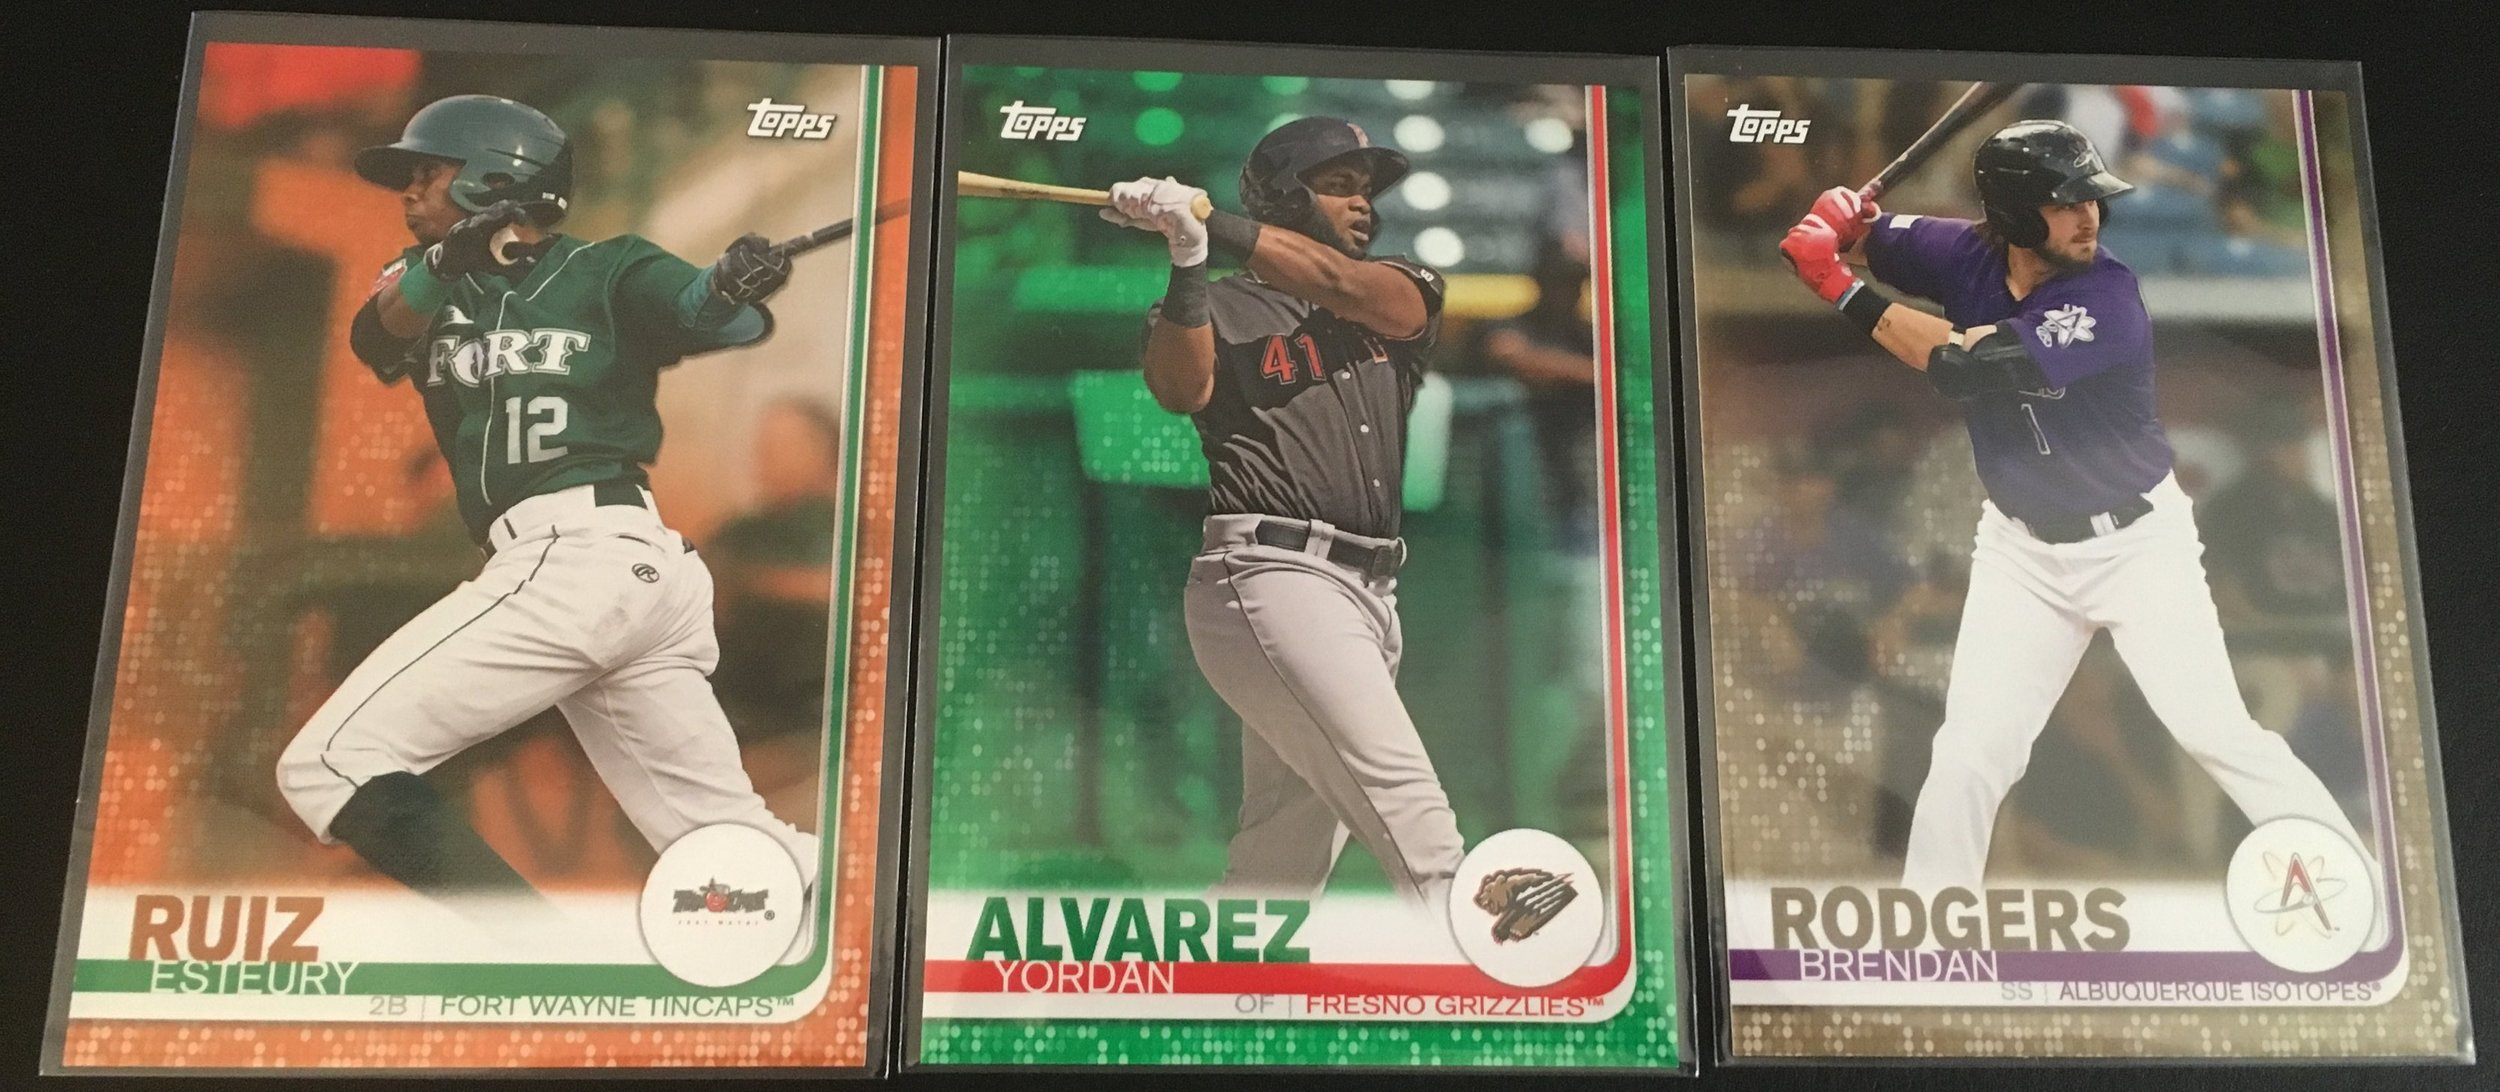 2019-Topps-Pro-Debut-Parallels.JPG